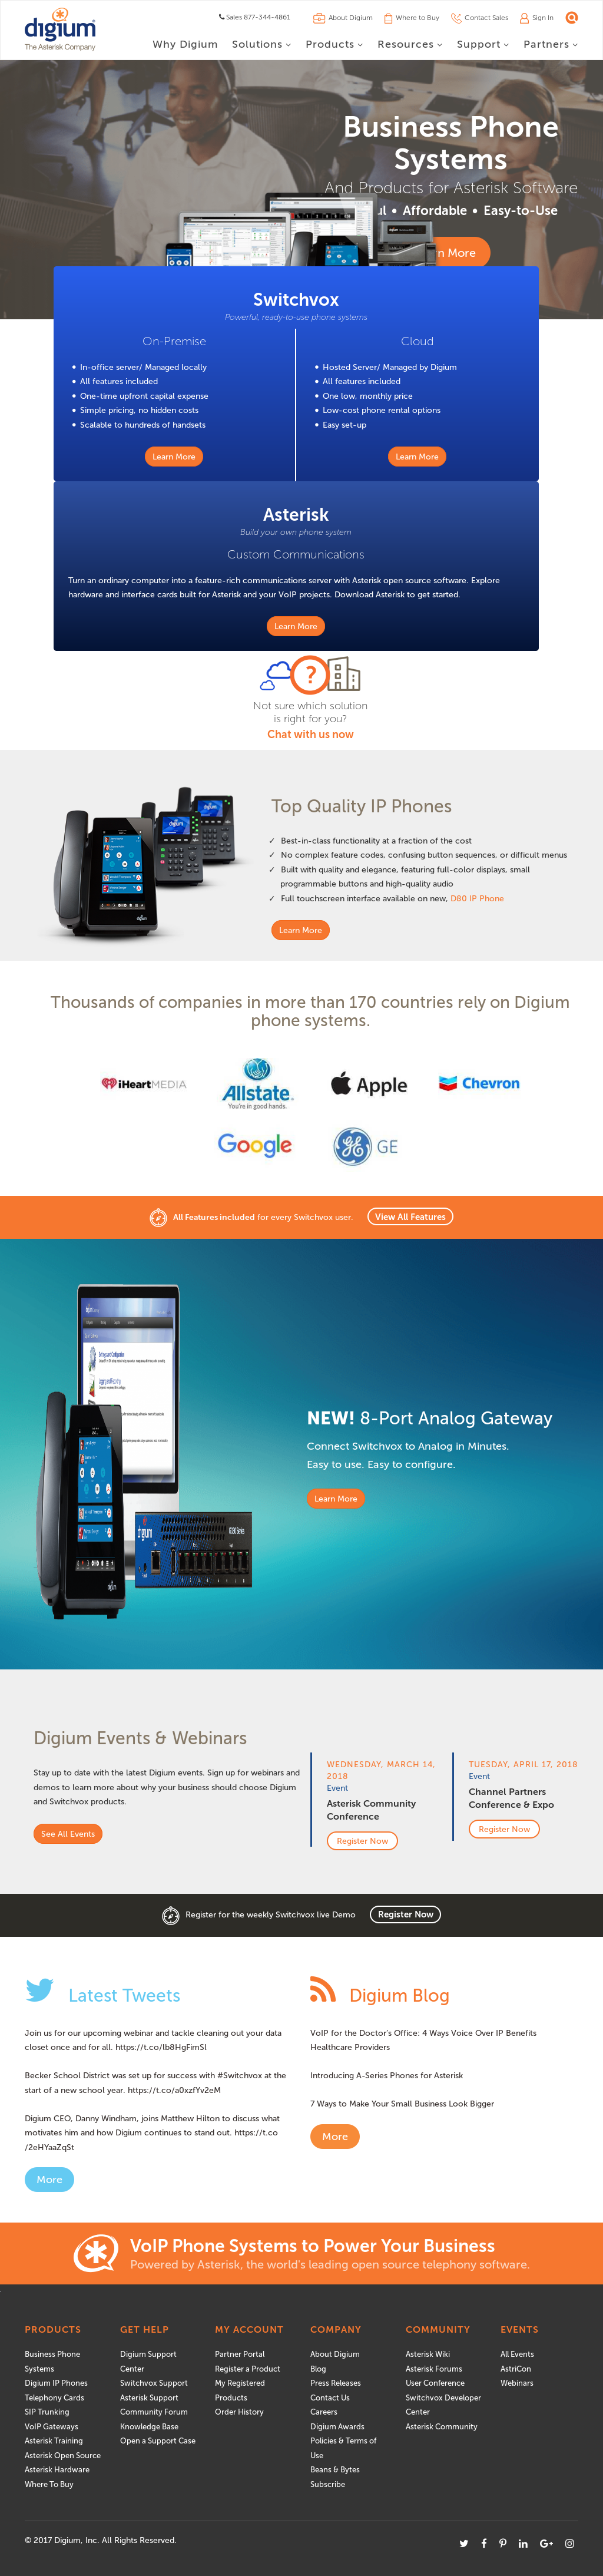 Digium Competitors, Revenue and Employees - Owler Company